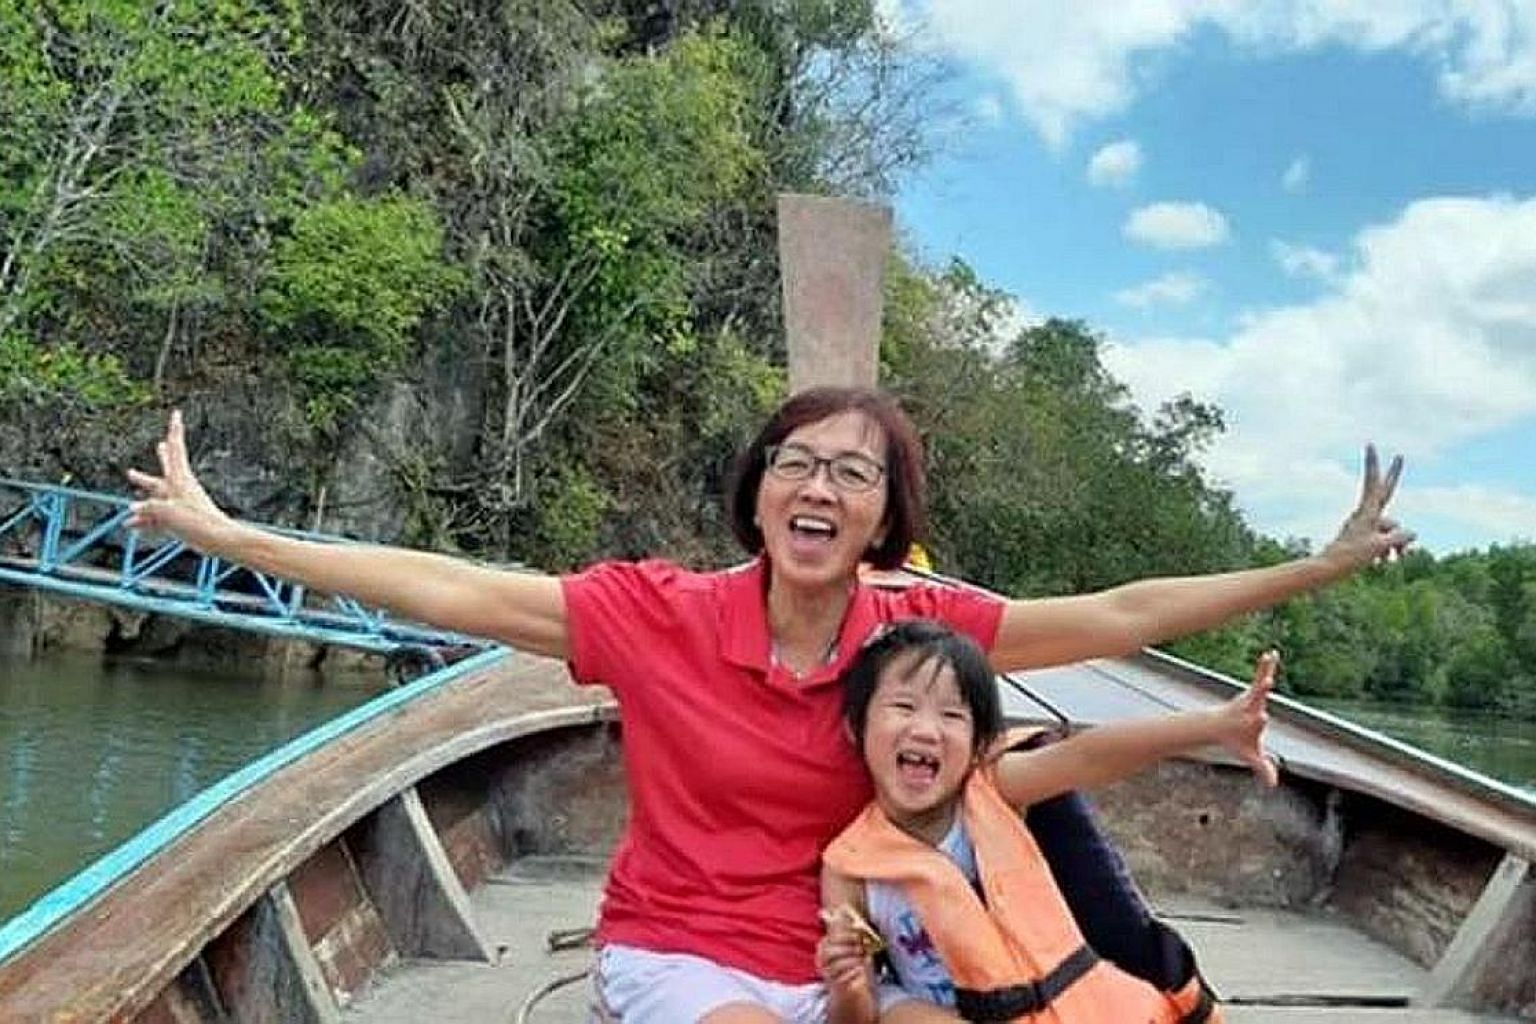 A 69-year-old woman and her five-year-old granddaughter were critically injured in an accident involving the van they were in and a car on March 22. The woman died in hospital on Sunday, five days after her granddaughter's funeral. PHOTO: DERRICK NG/